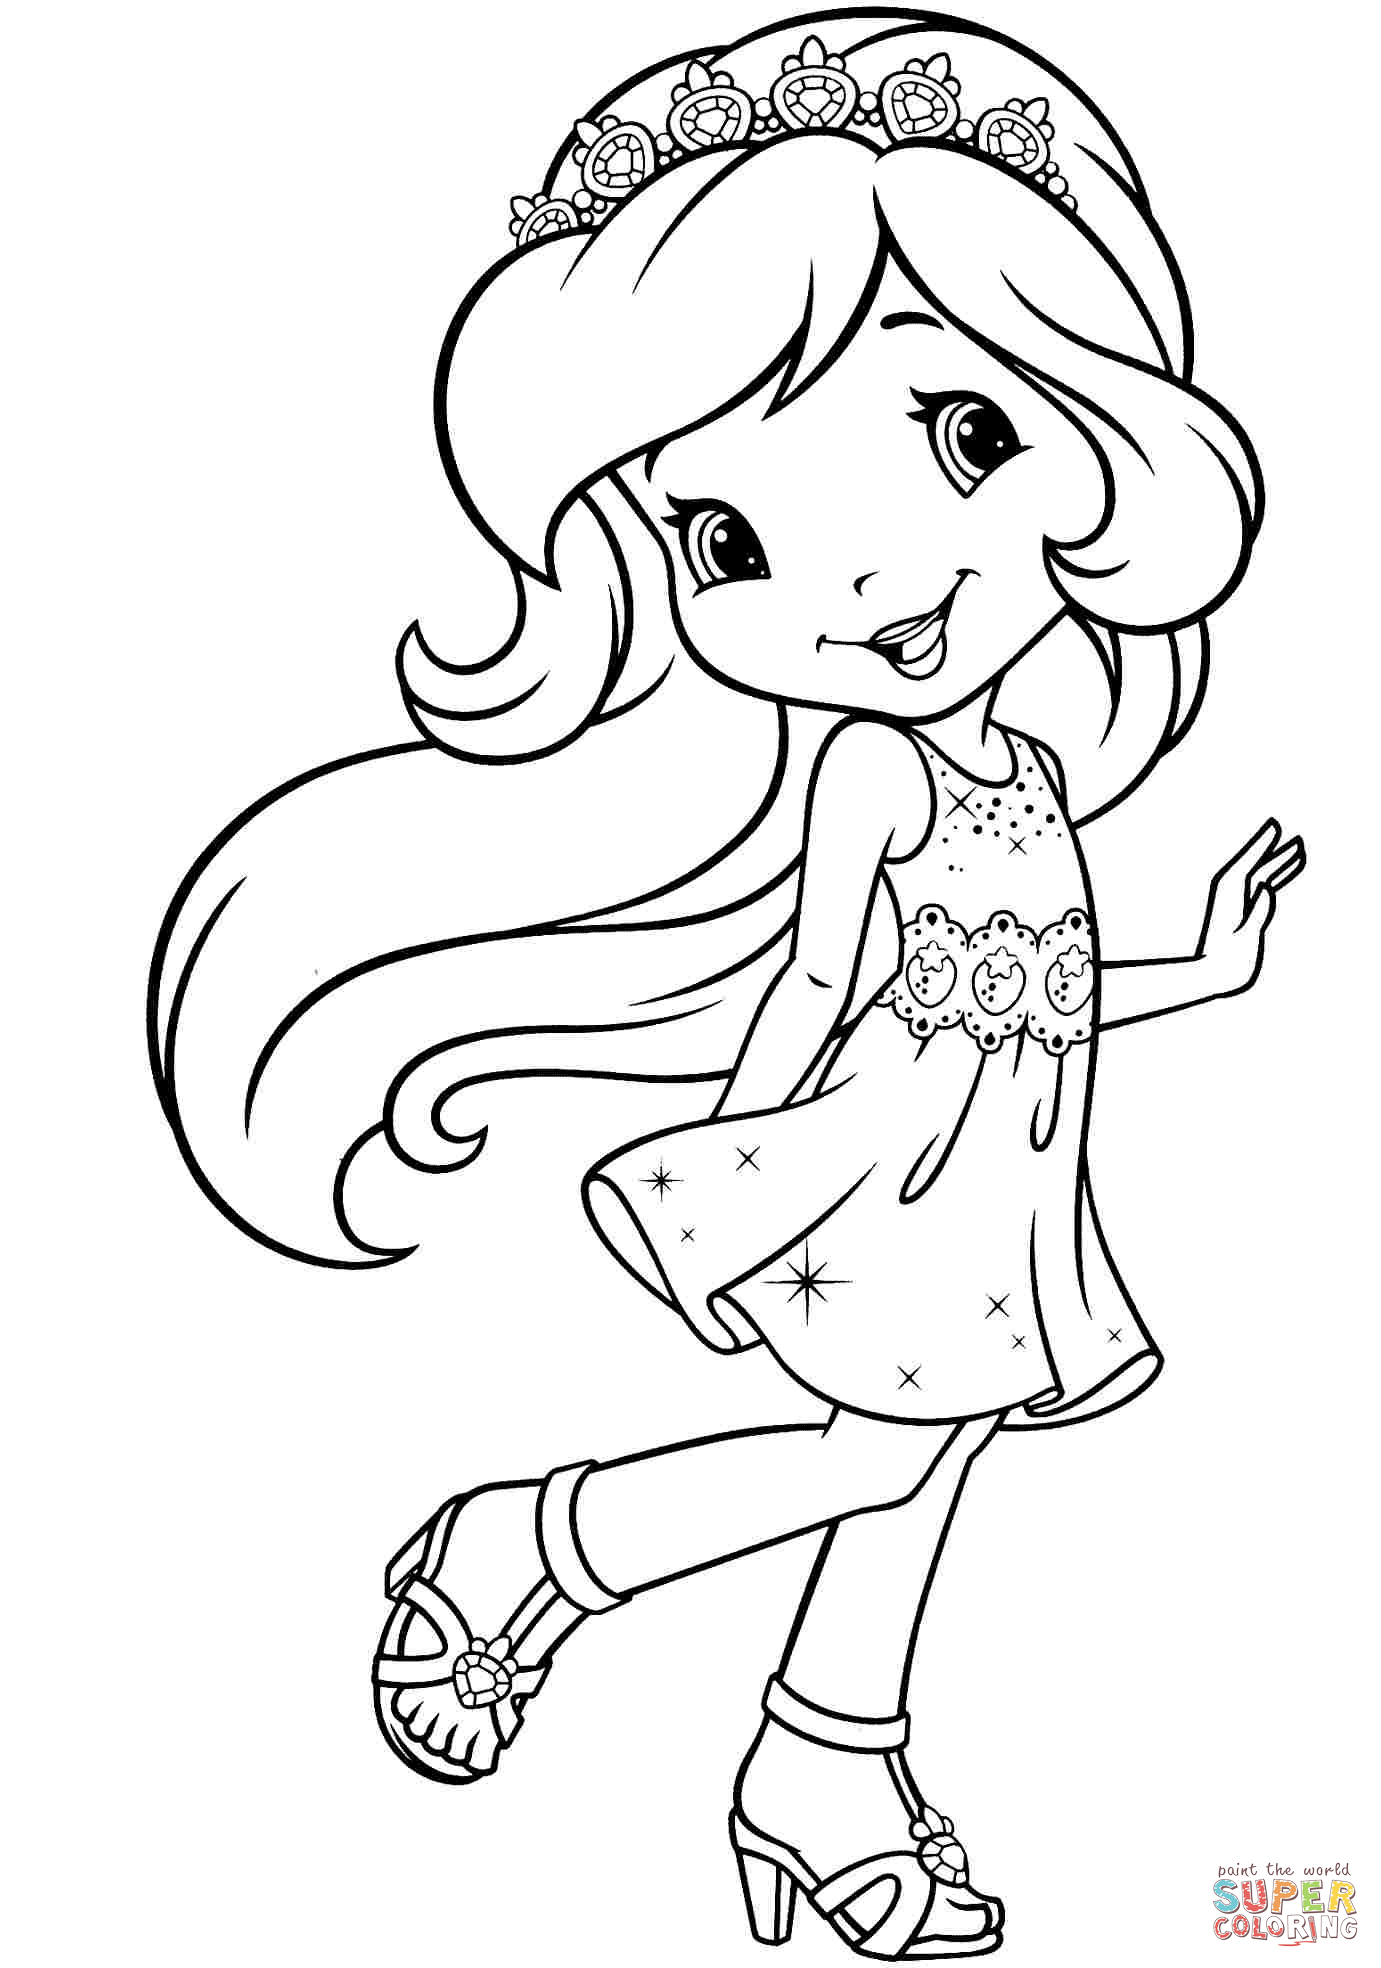 strawberry shortcake princess coloring pages strawberry shortcake coloring page desenhos para coloring shortcake strawberry pages princess